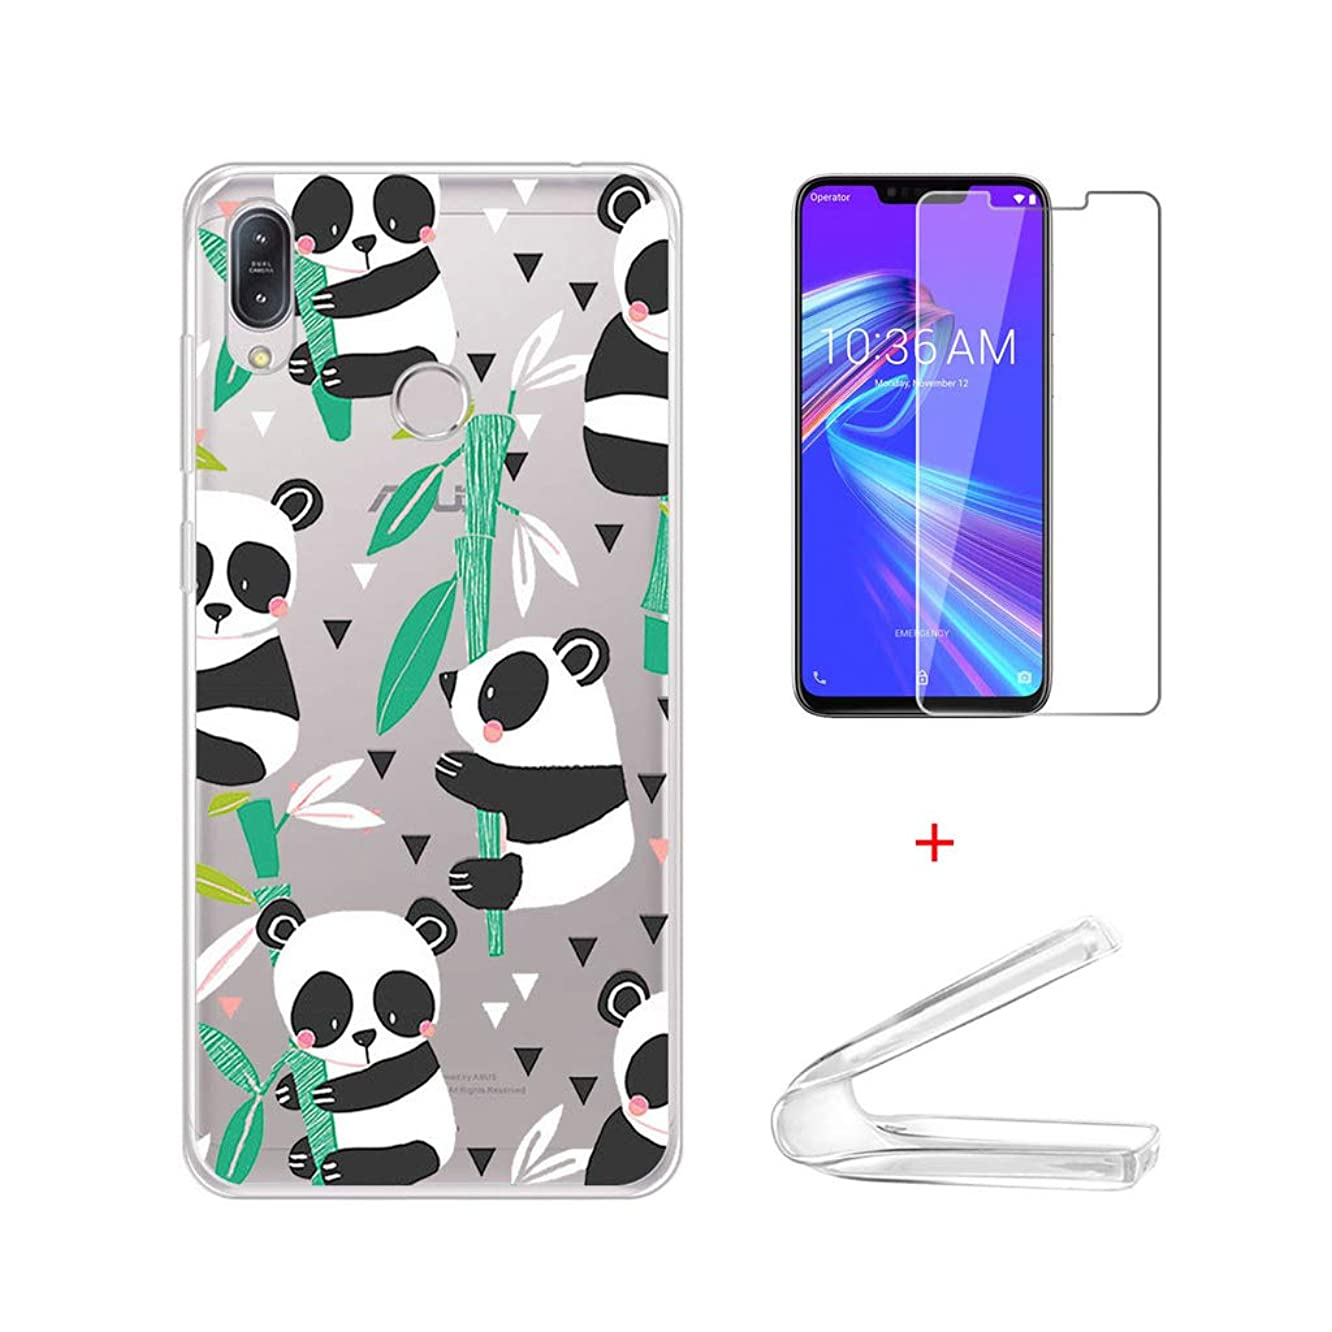 HYMY Case Cover Tempered Film for Asus Zenfone Max (M2) ZB633KL (6.3